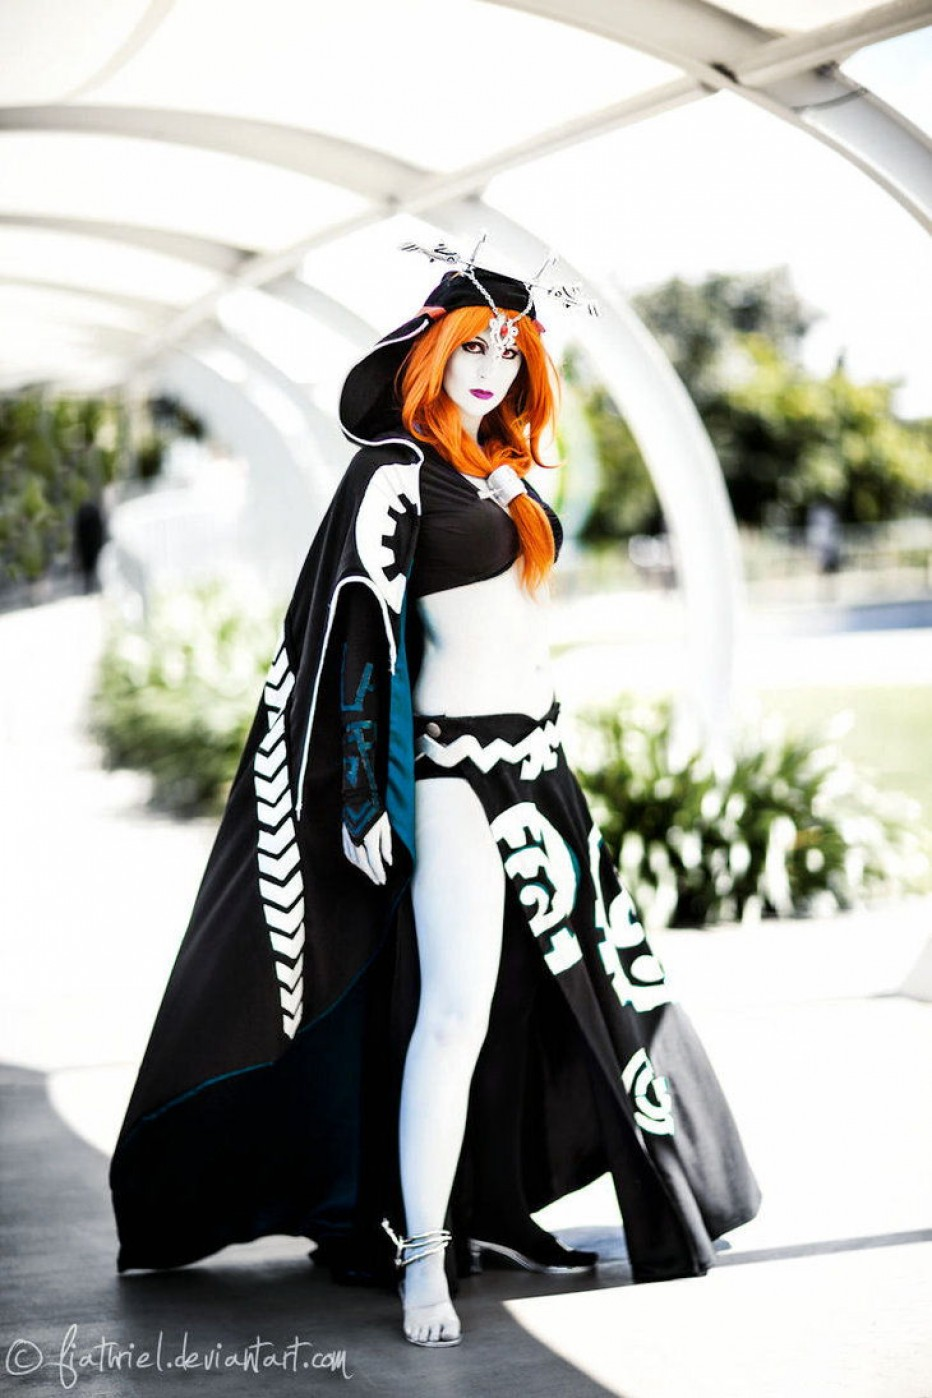 The-Legend-of-Zelda-Twilight-Princess-Midna-Cosplay-1.jpg